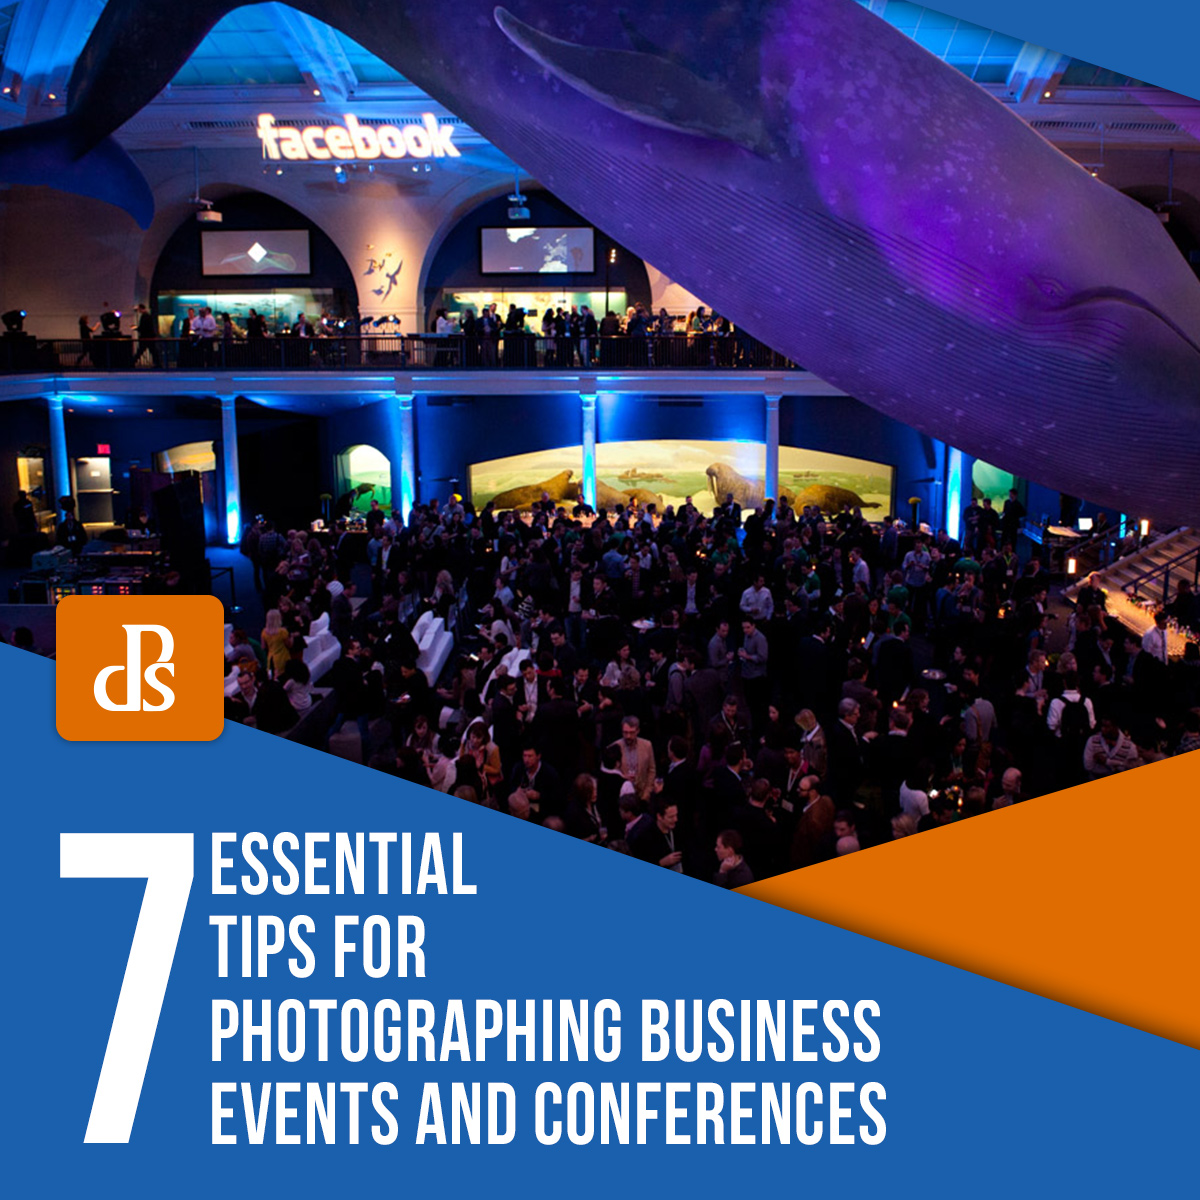 photographing business events and conferences tips